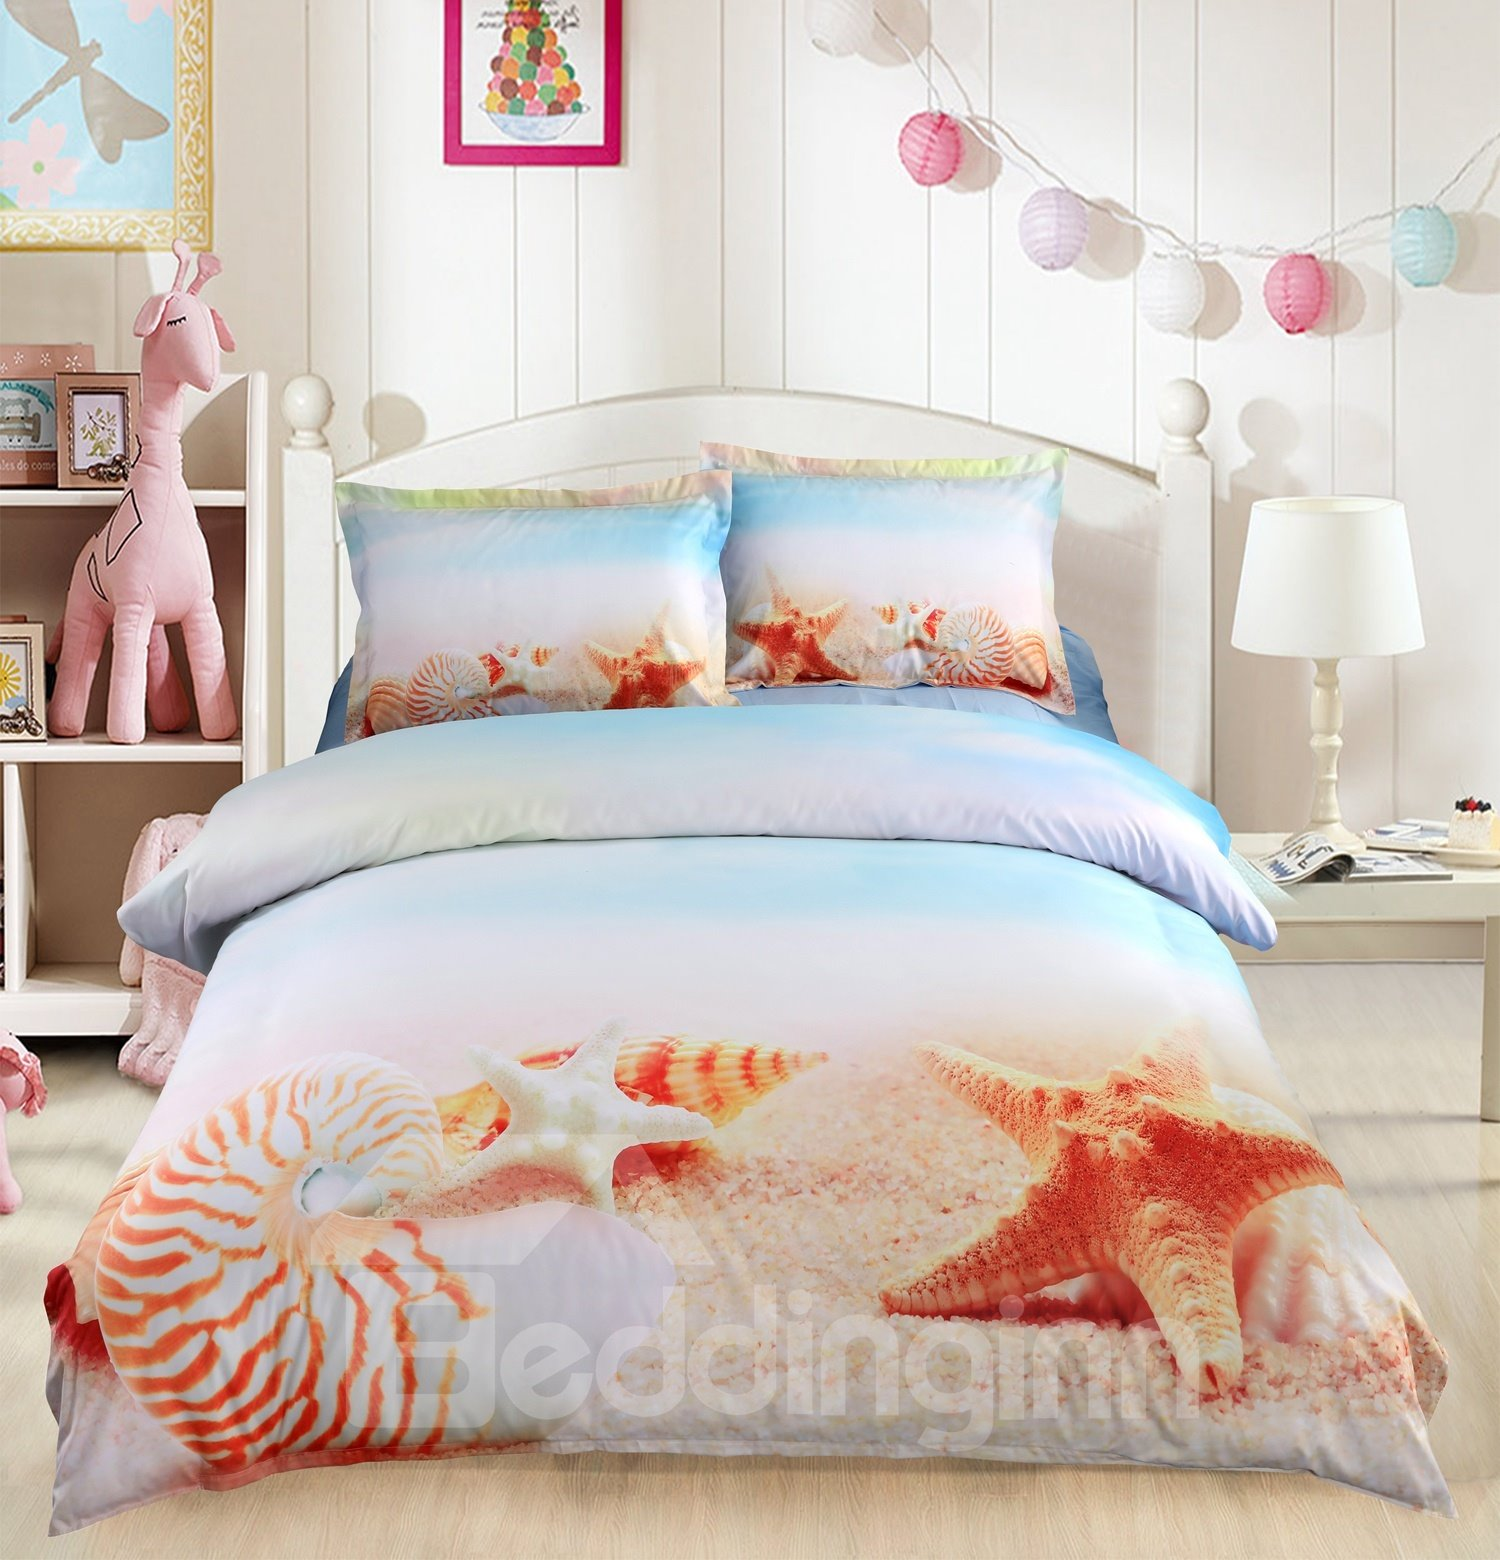 Onlwe 3D Starfish and Conch on Sand Printed 4-Piece Bedding Sets/Duvet Covers